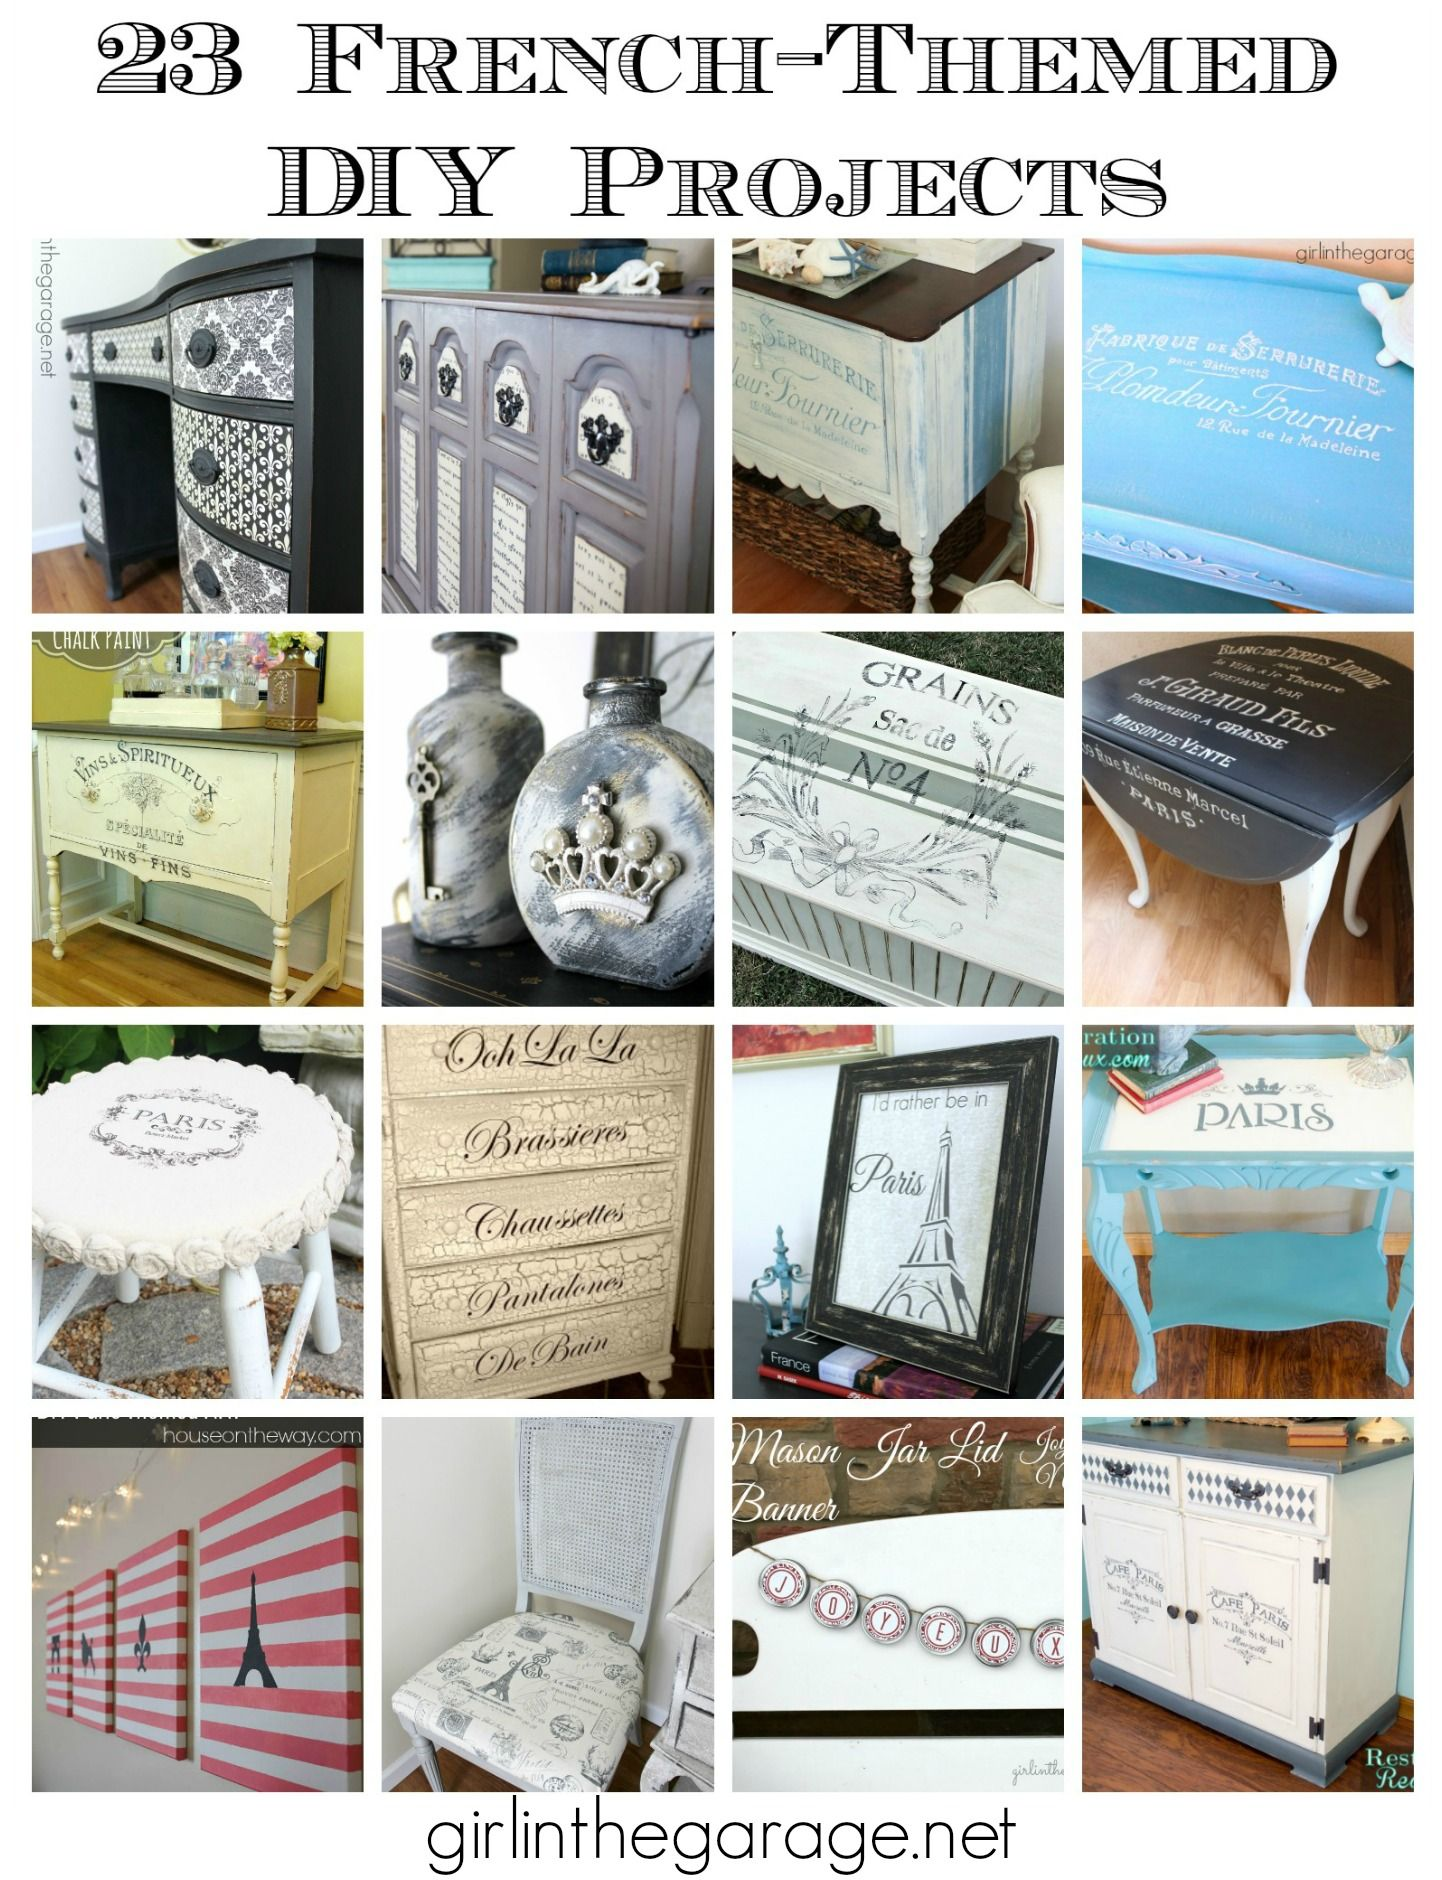 23 French-Themed DIY Projects (With images) | Diy projects ...